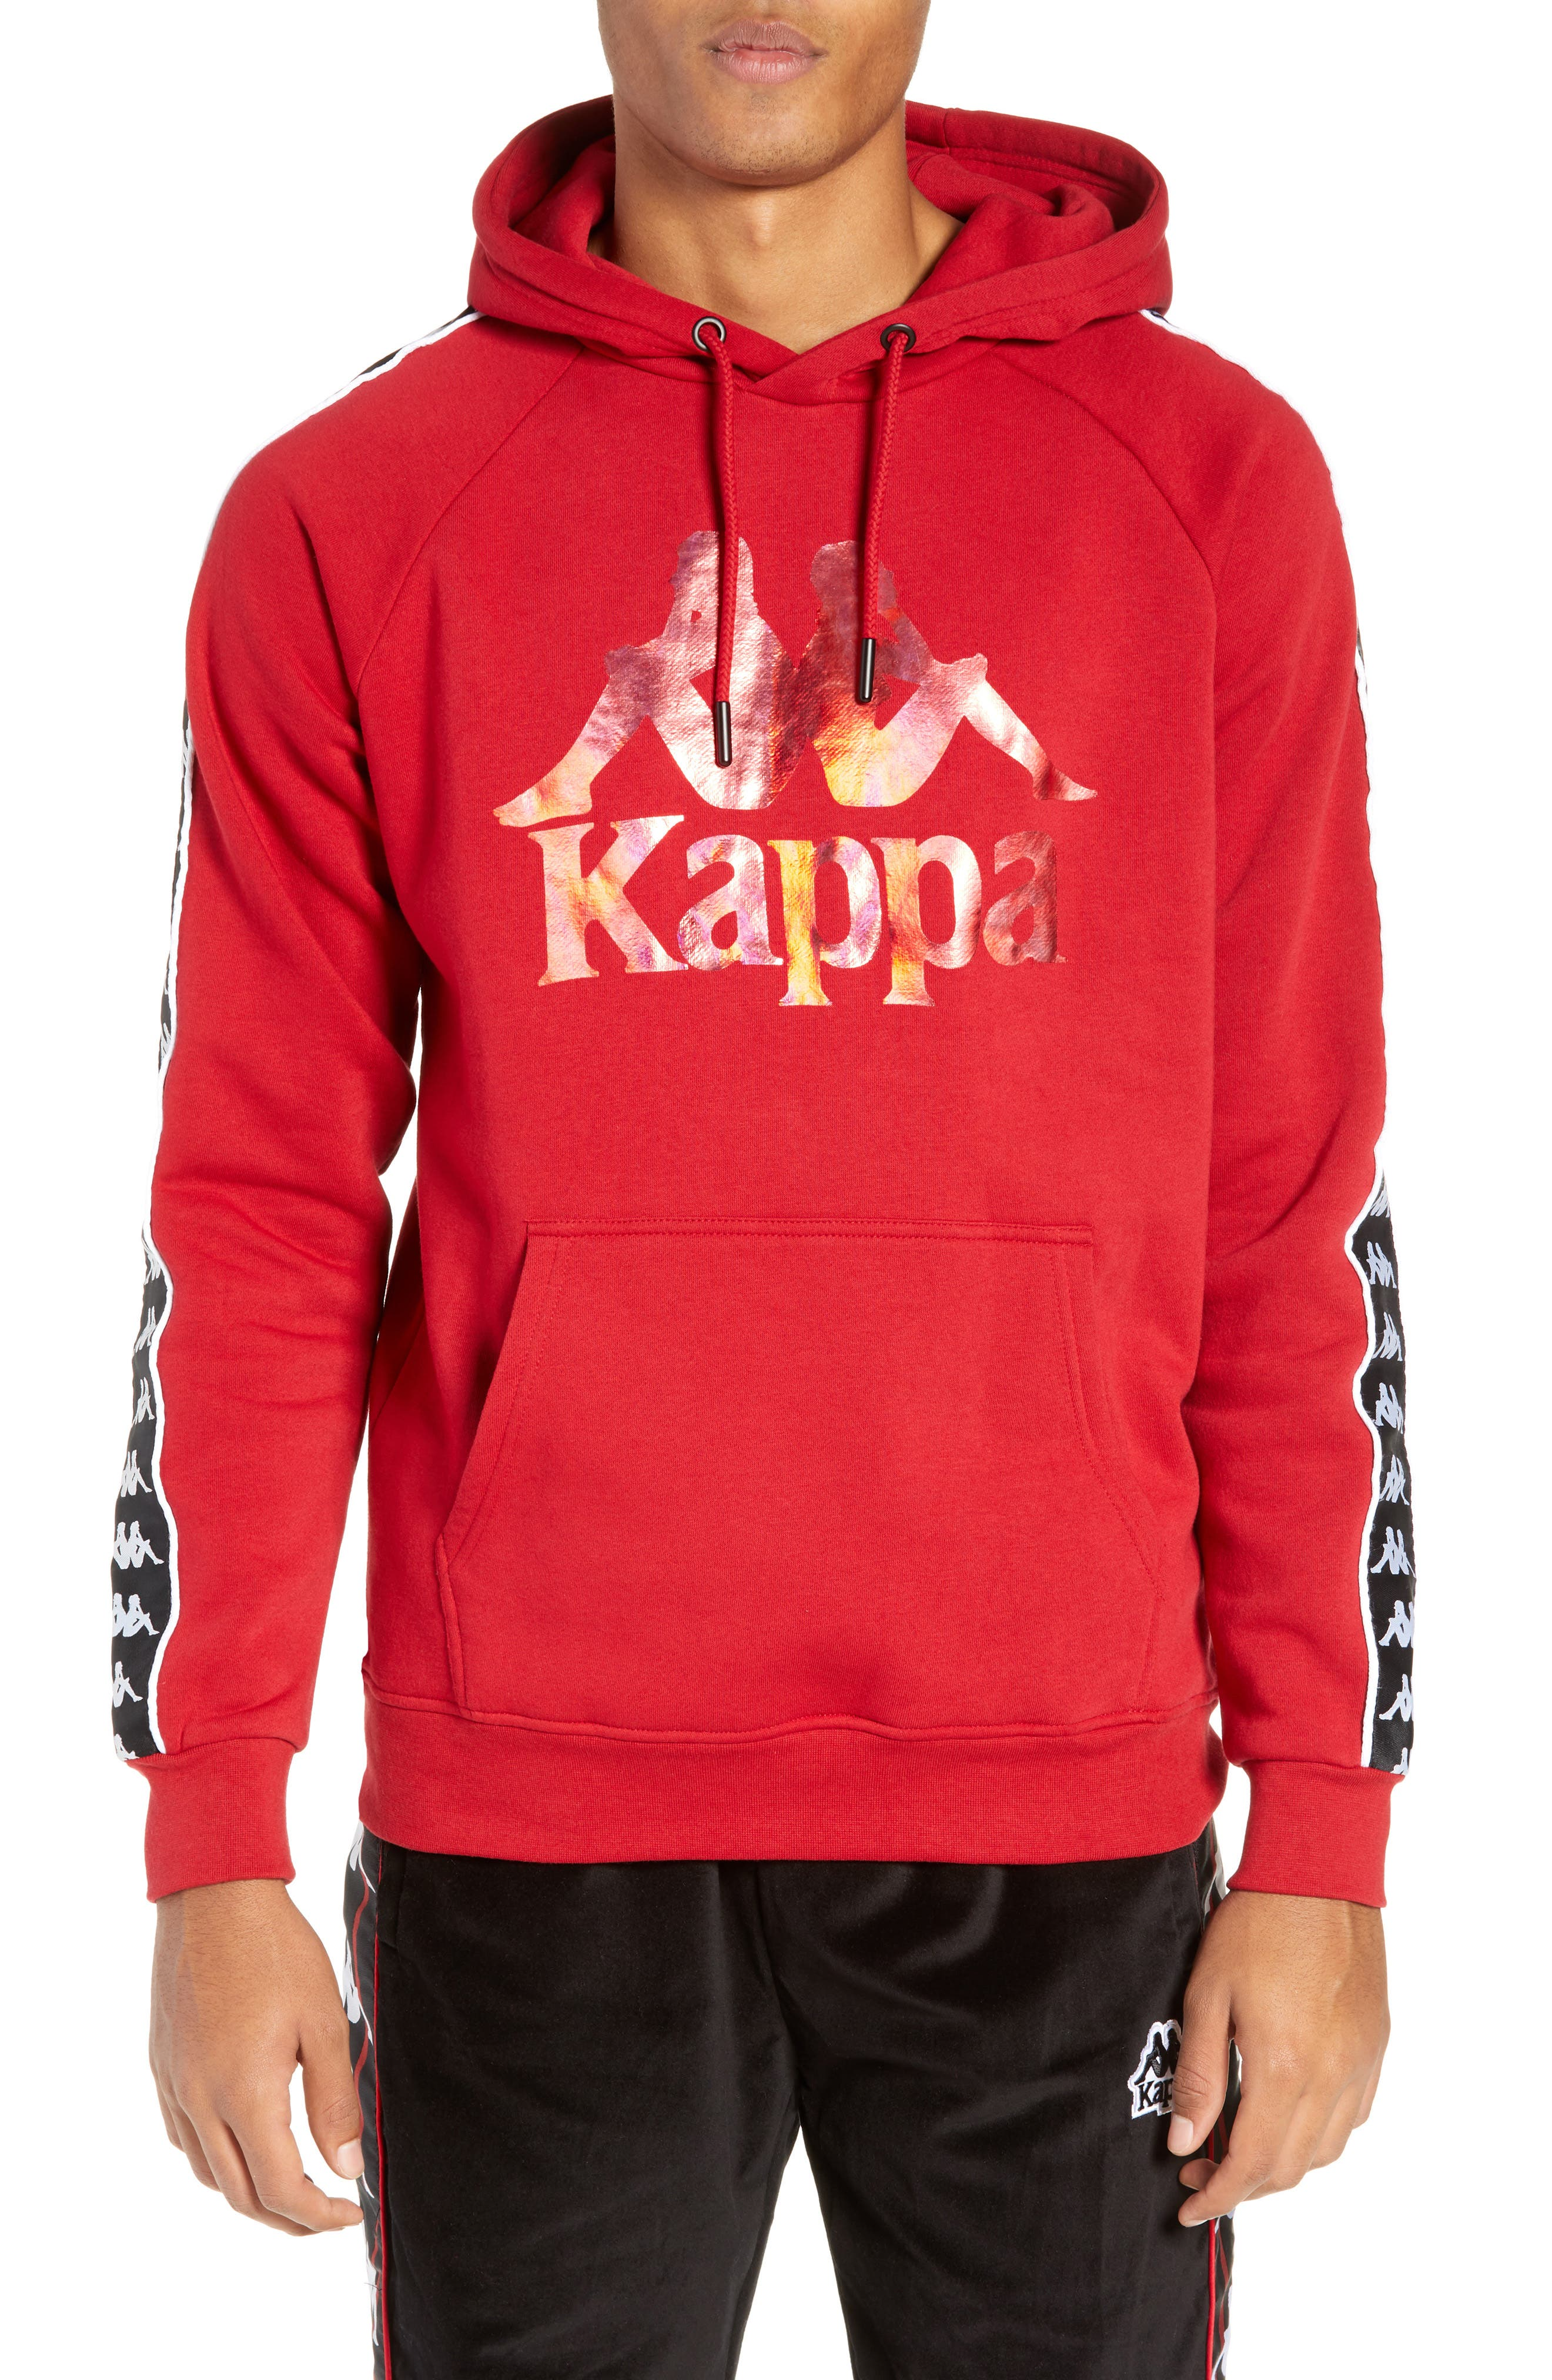 Banda Graphic Hoodie,                             Main thumbnail 1, color,                             RED/ BLACK/ WHITE